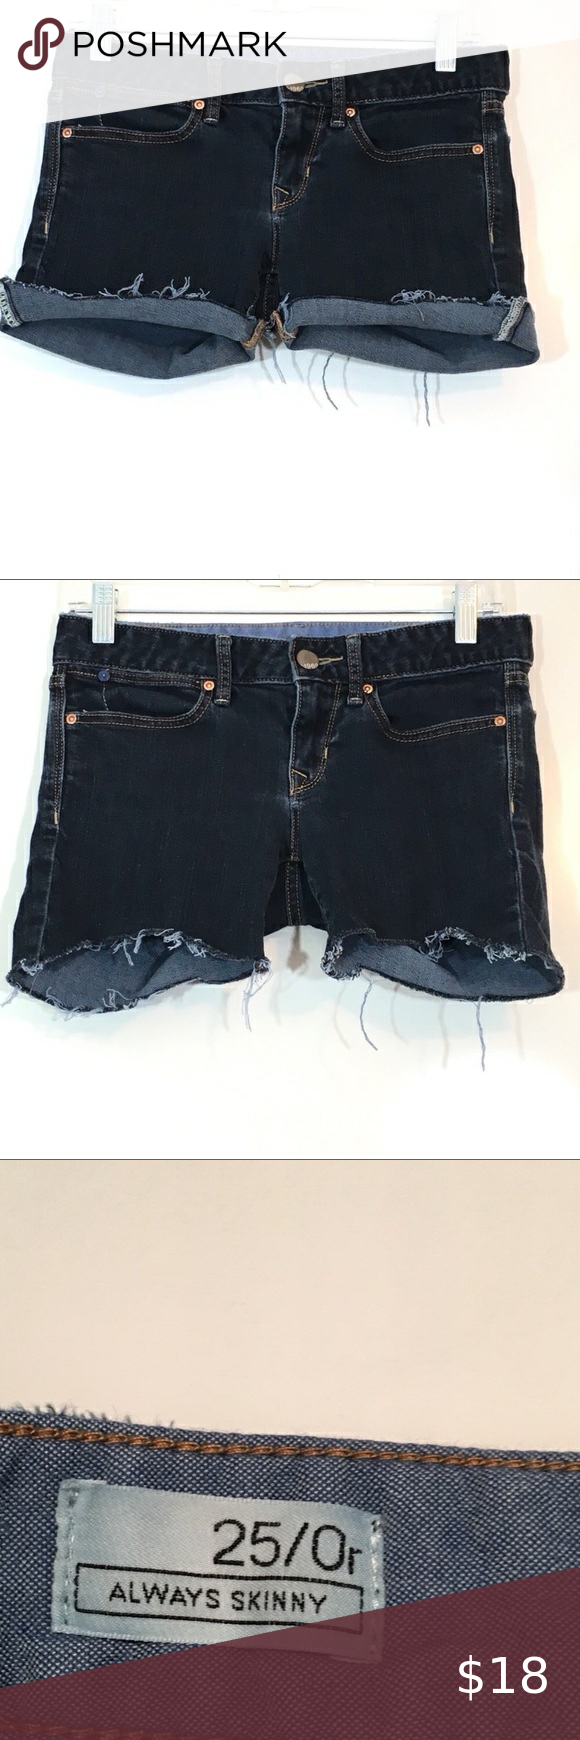 X-Future Womens Rivet Low Waist Cut Off Ripped Holes Denim Shorts Jeans